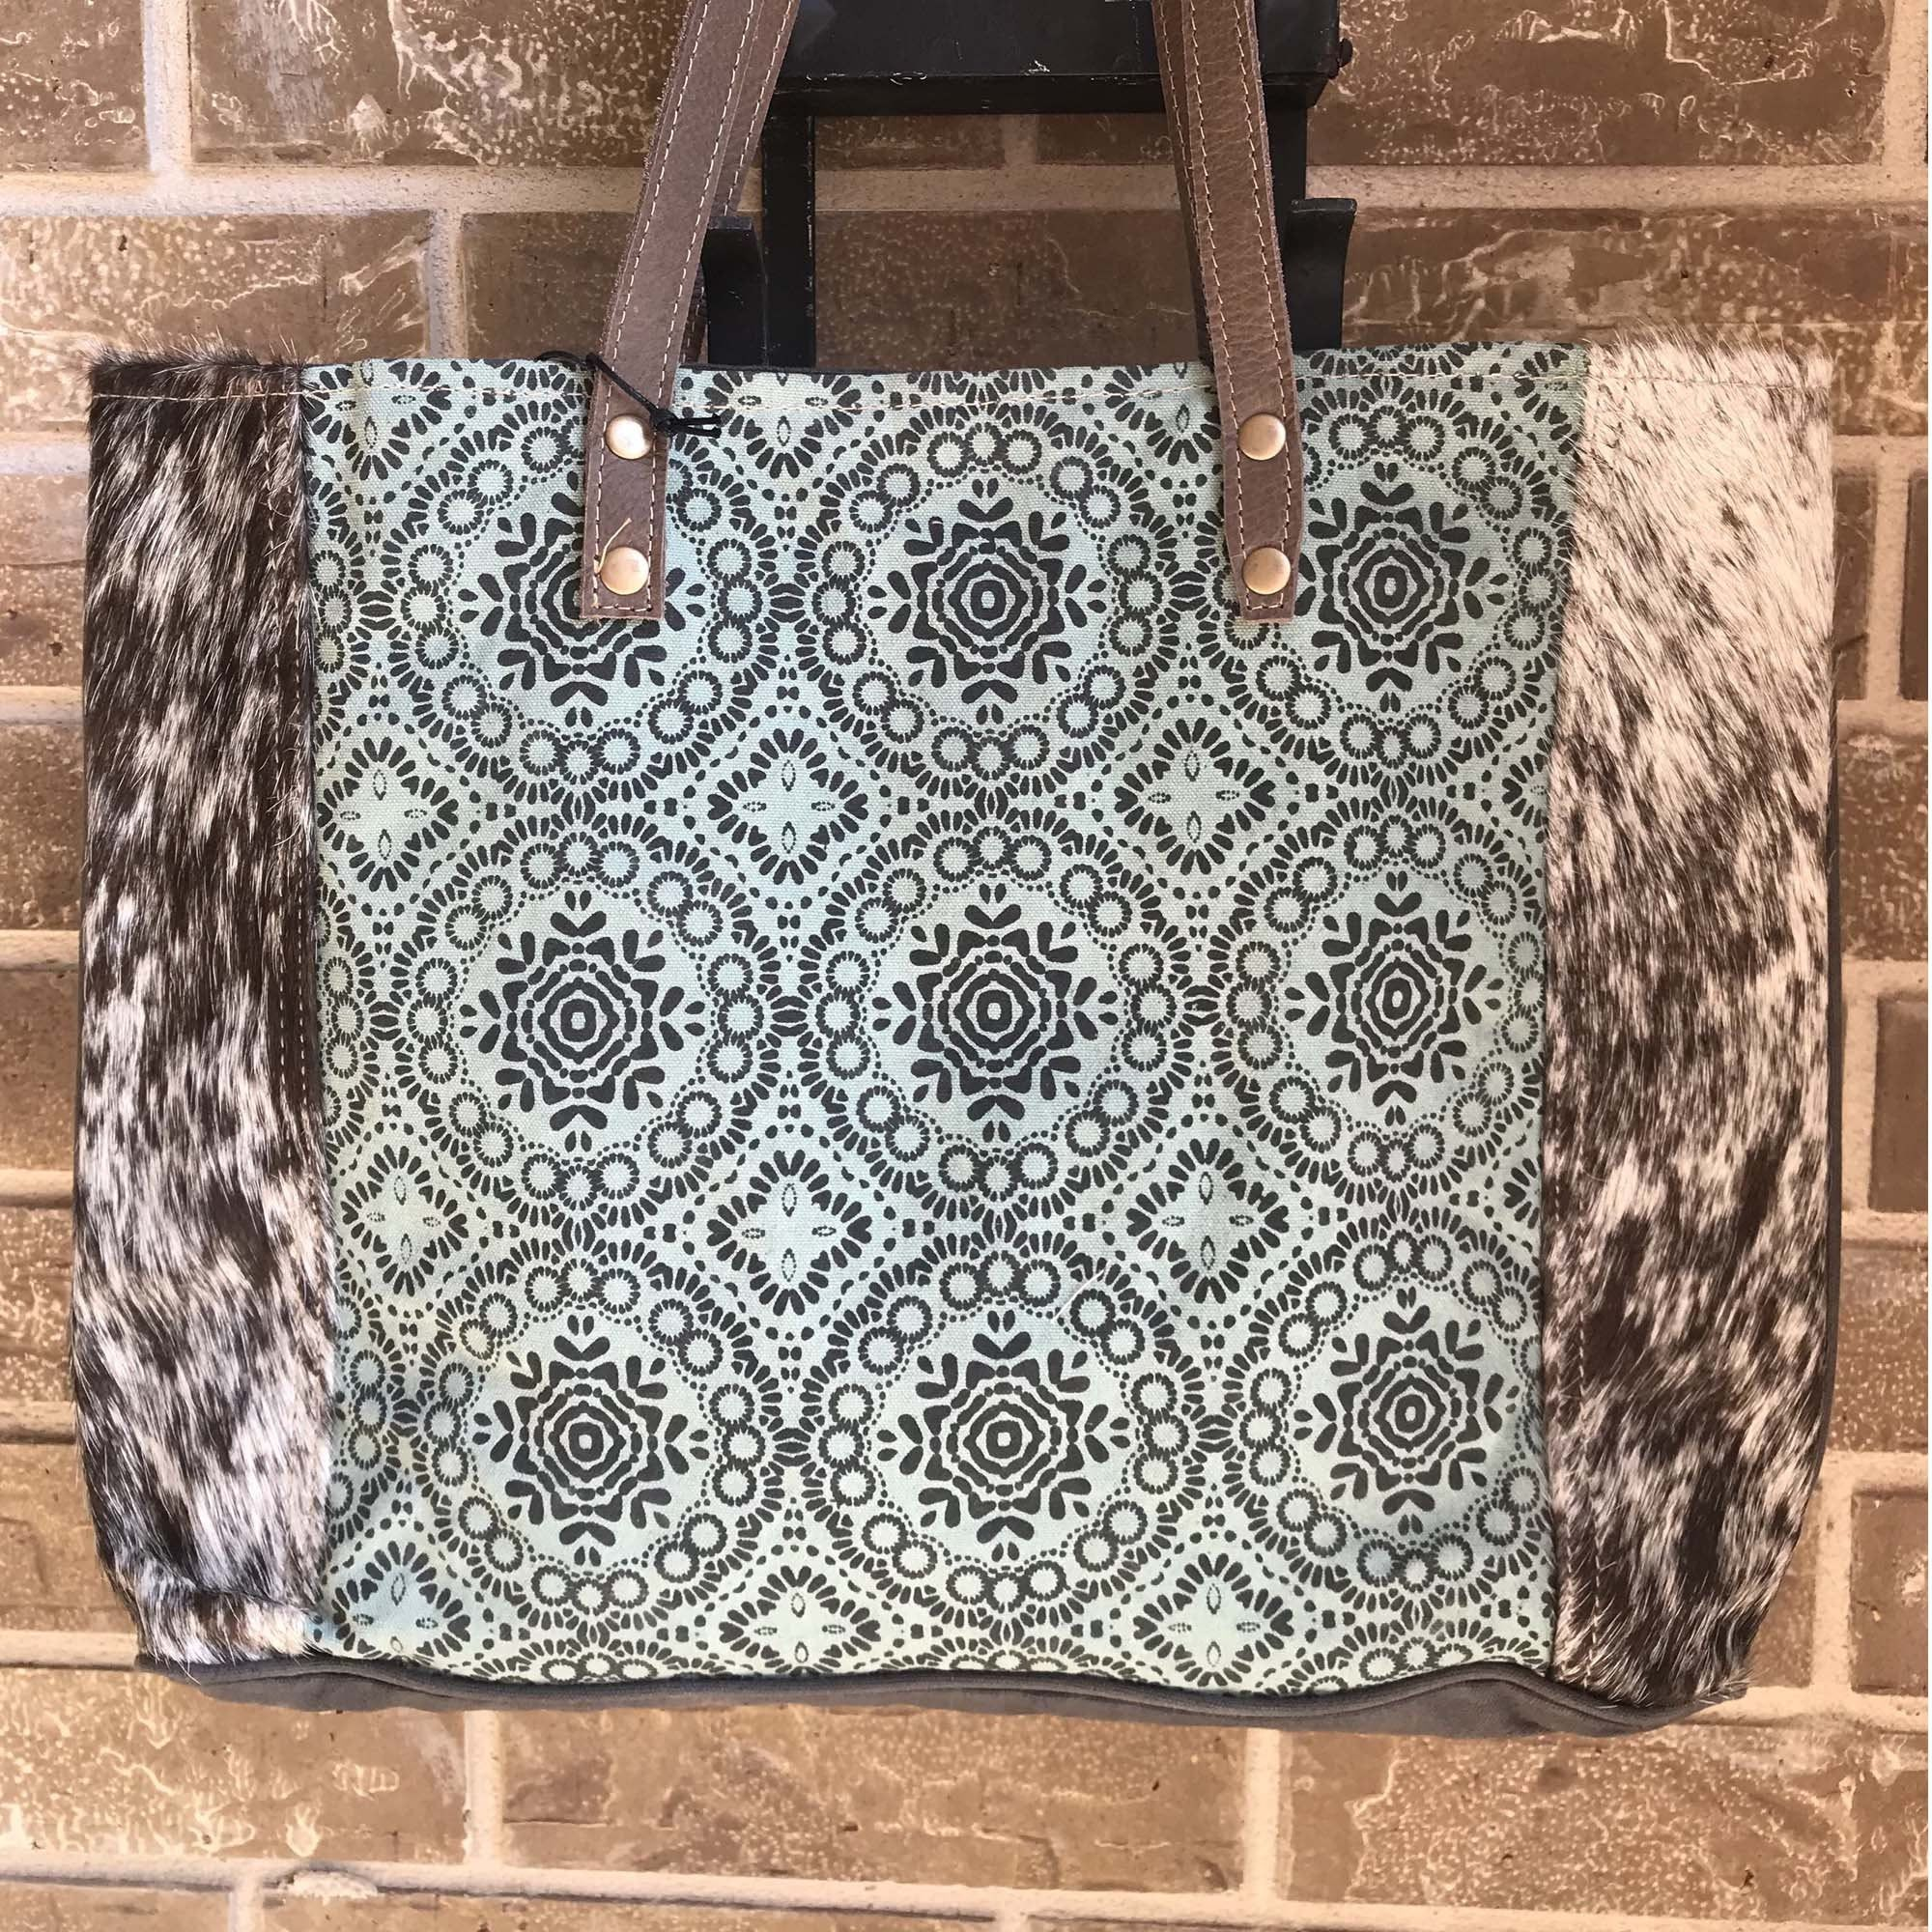 Myra Bag Tote Bag Shoulder Bag Travel Bag Large Bag In 2020 Bags Upcycled Bag Tote Bag Using ona bags discount code. pinterest